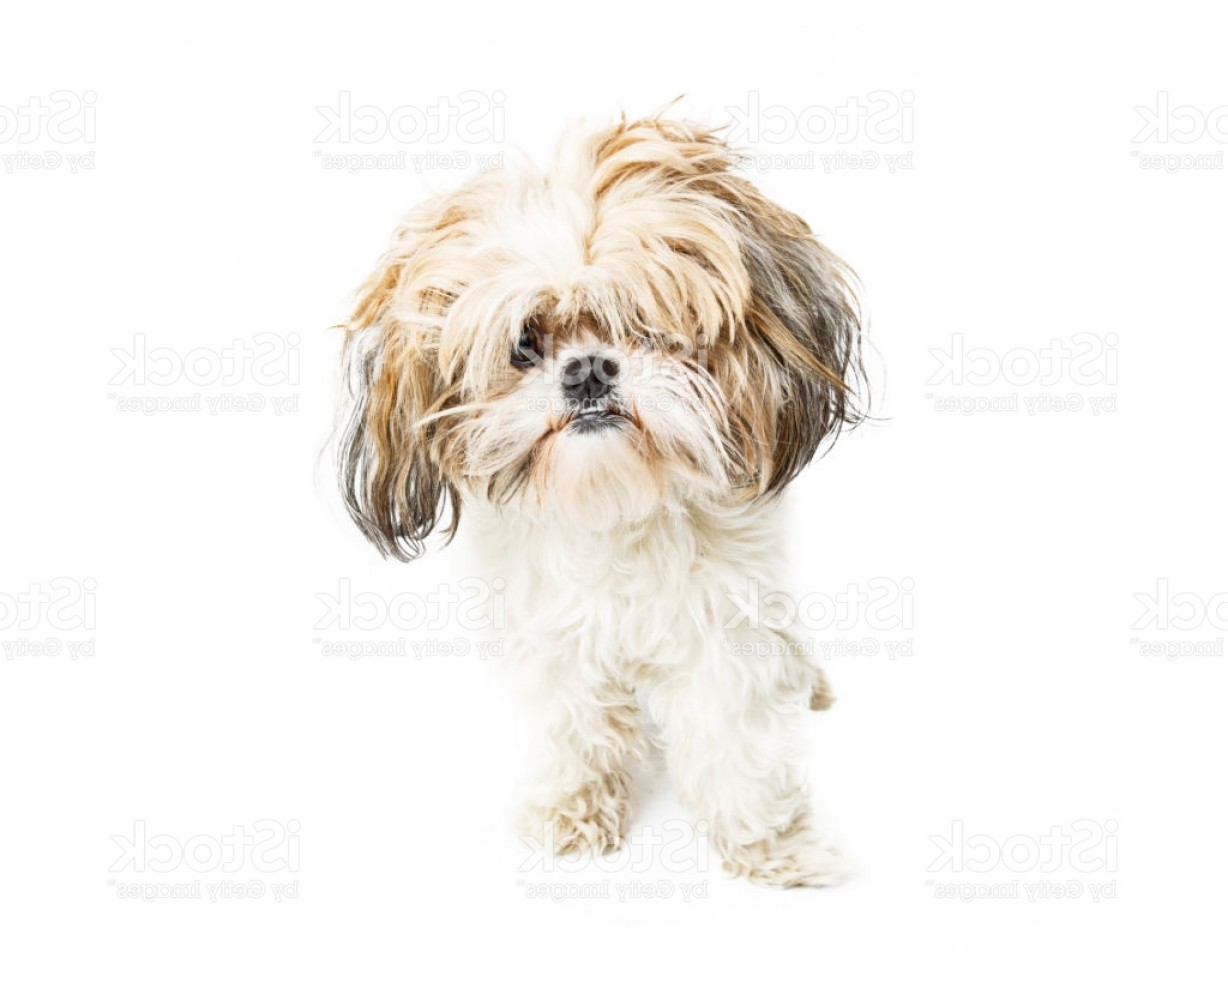 Shih Tzu Vector Siluete: Funny Shih Tzu Dog With Messy Hair Gm